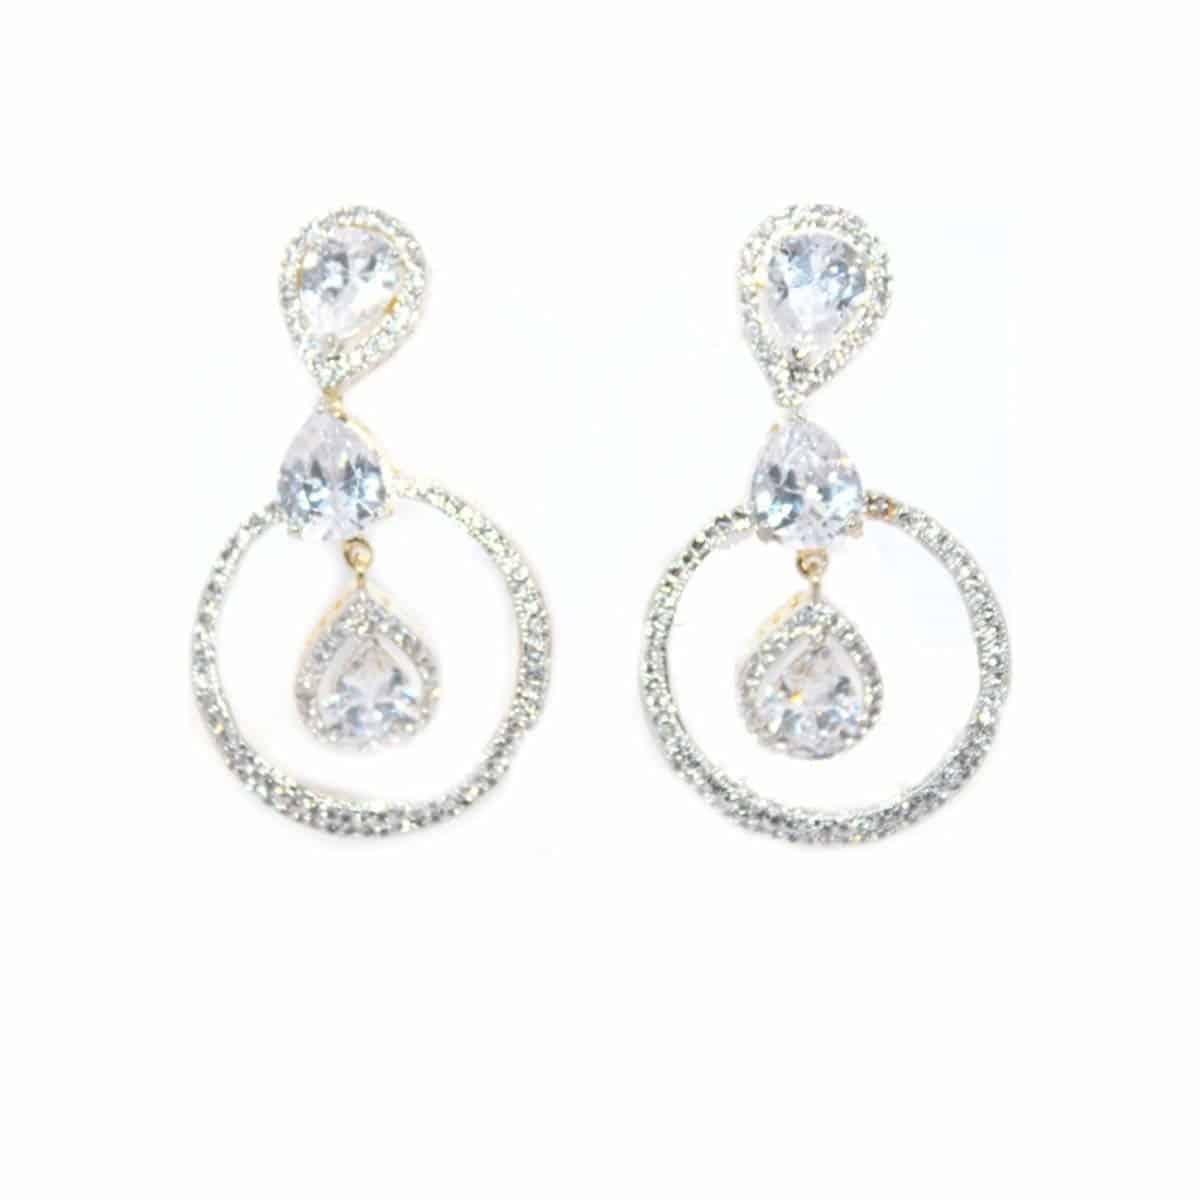 Jewelo American Diamond Full Round Earrings for Women.  #earrings #earringsforgirls #partywearearrings